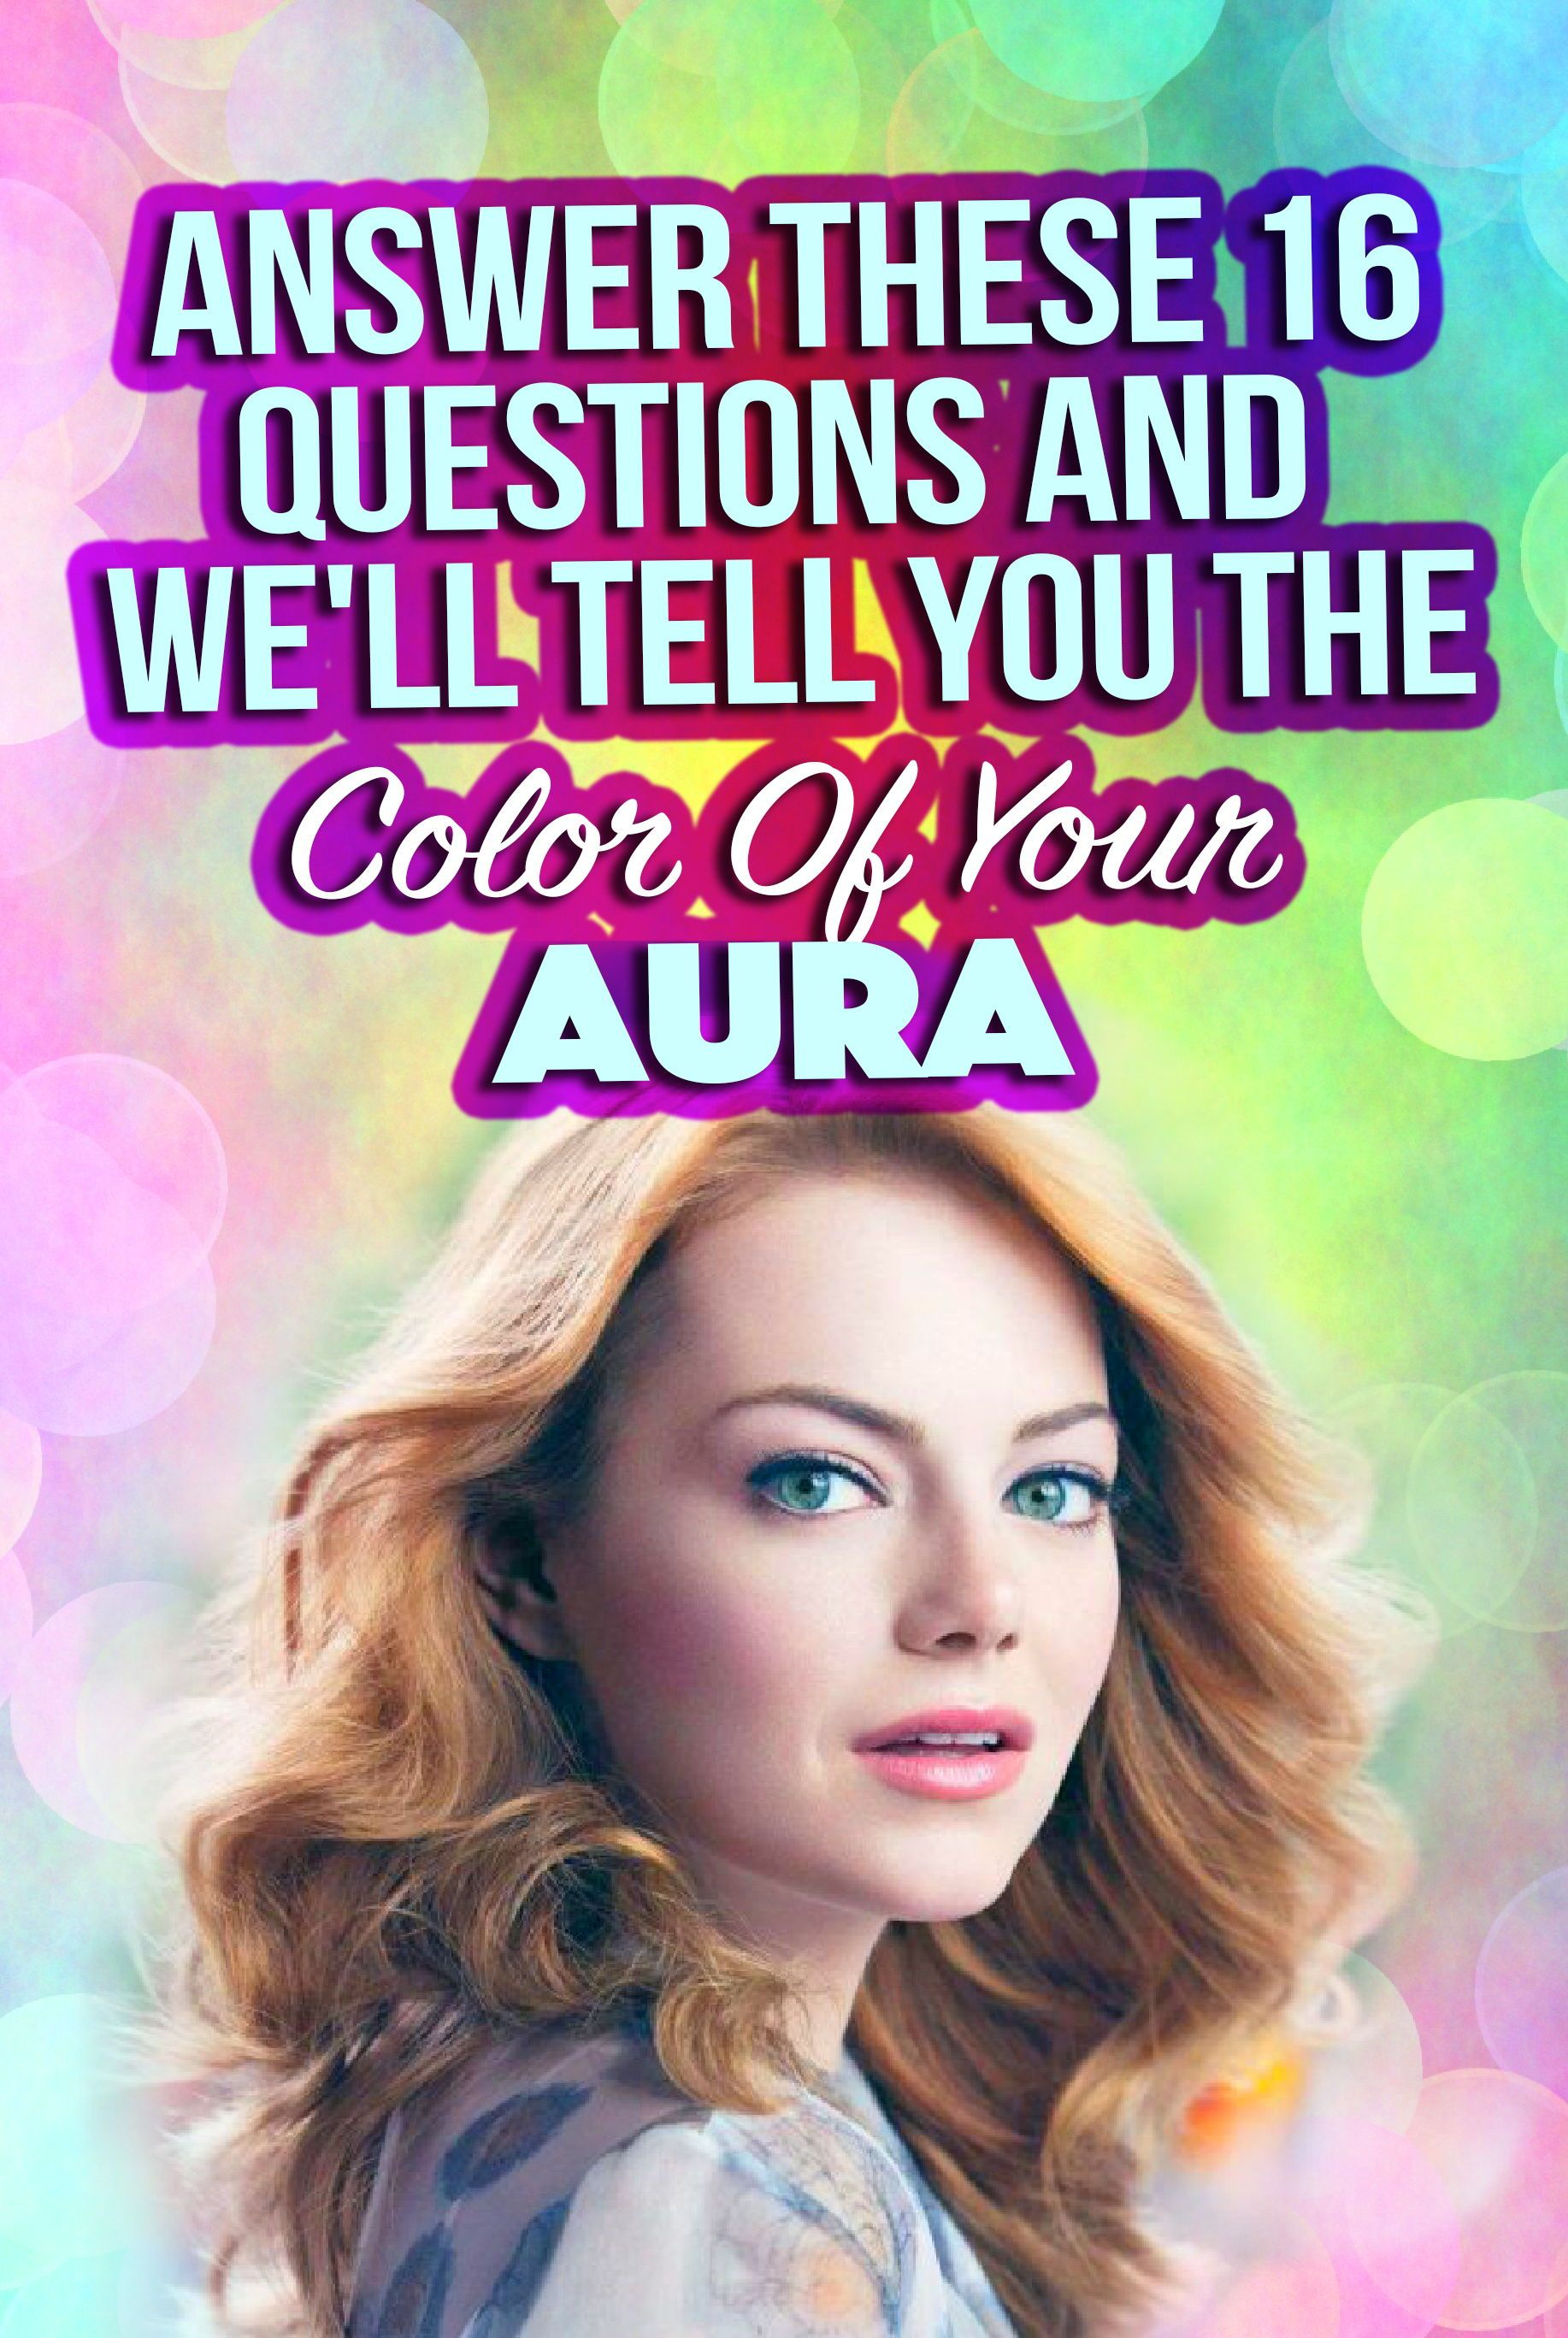 Quiz: Answer These 16 Questions And We'll Tell You The Color